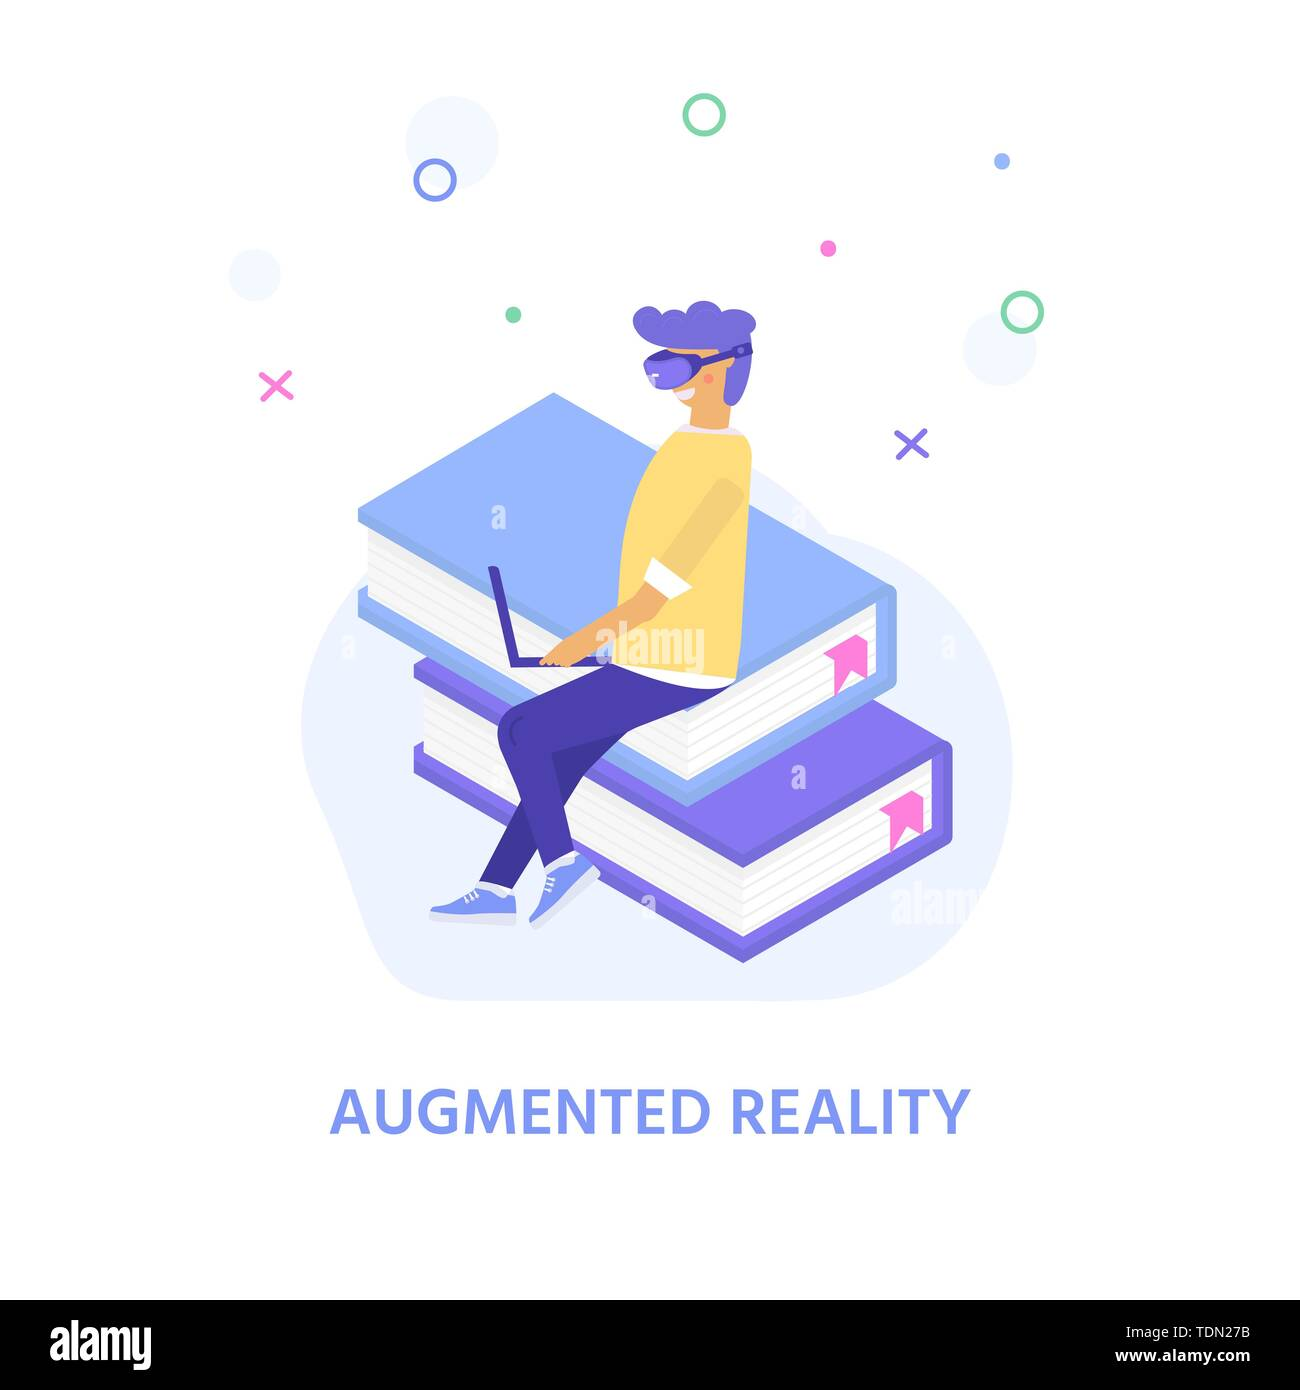 Virtual reality concept for landing page design with character  wearing goggle headset and touching vr interface, learning and interacting with imagin - Stock Image